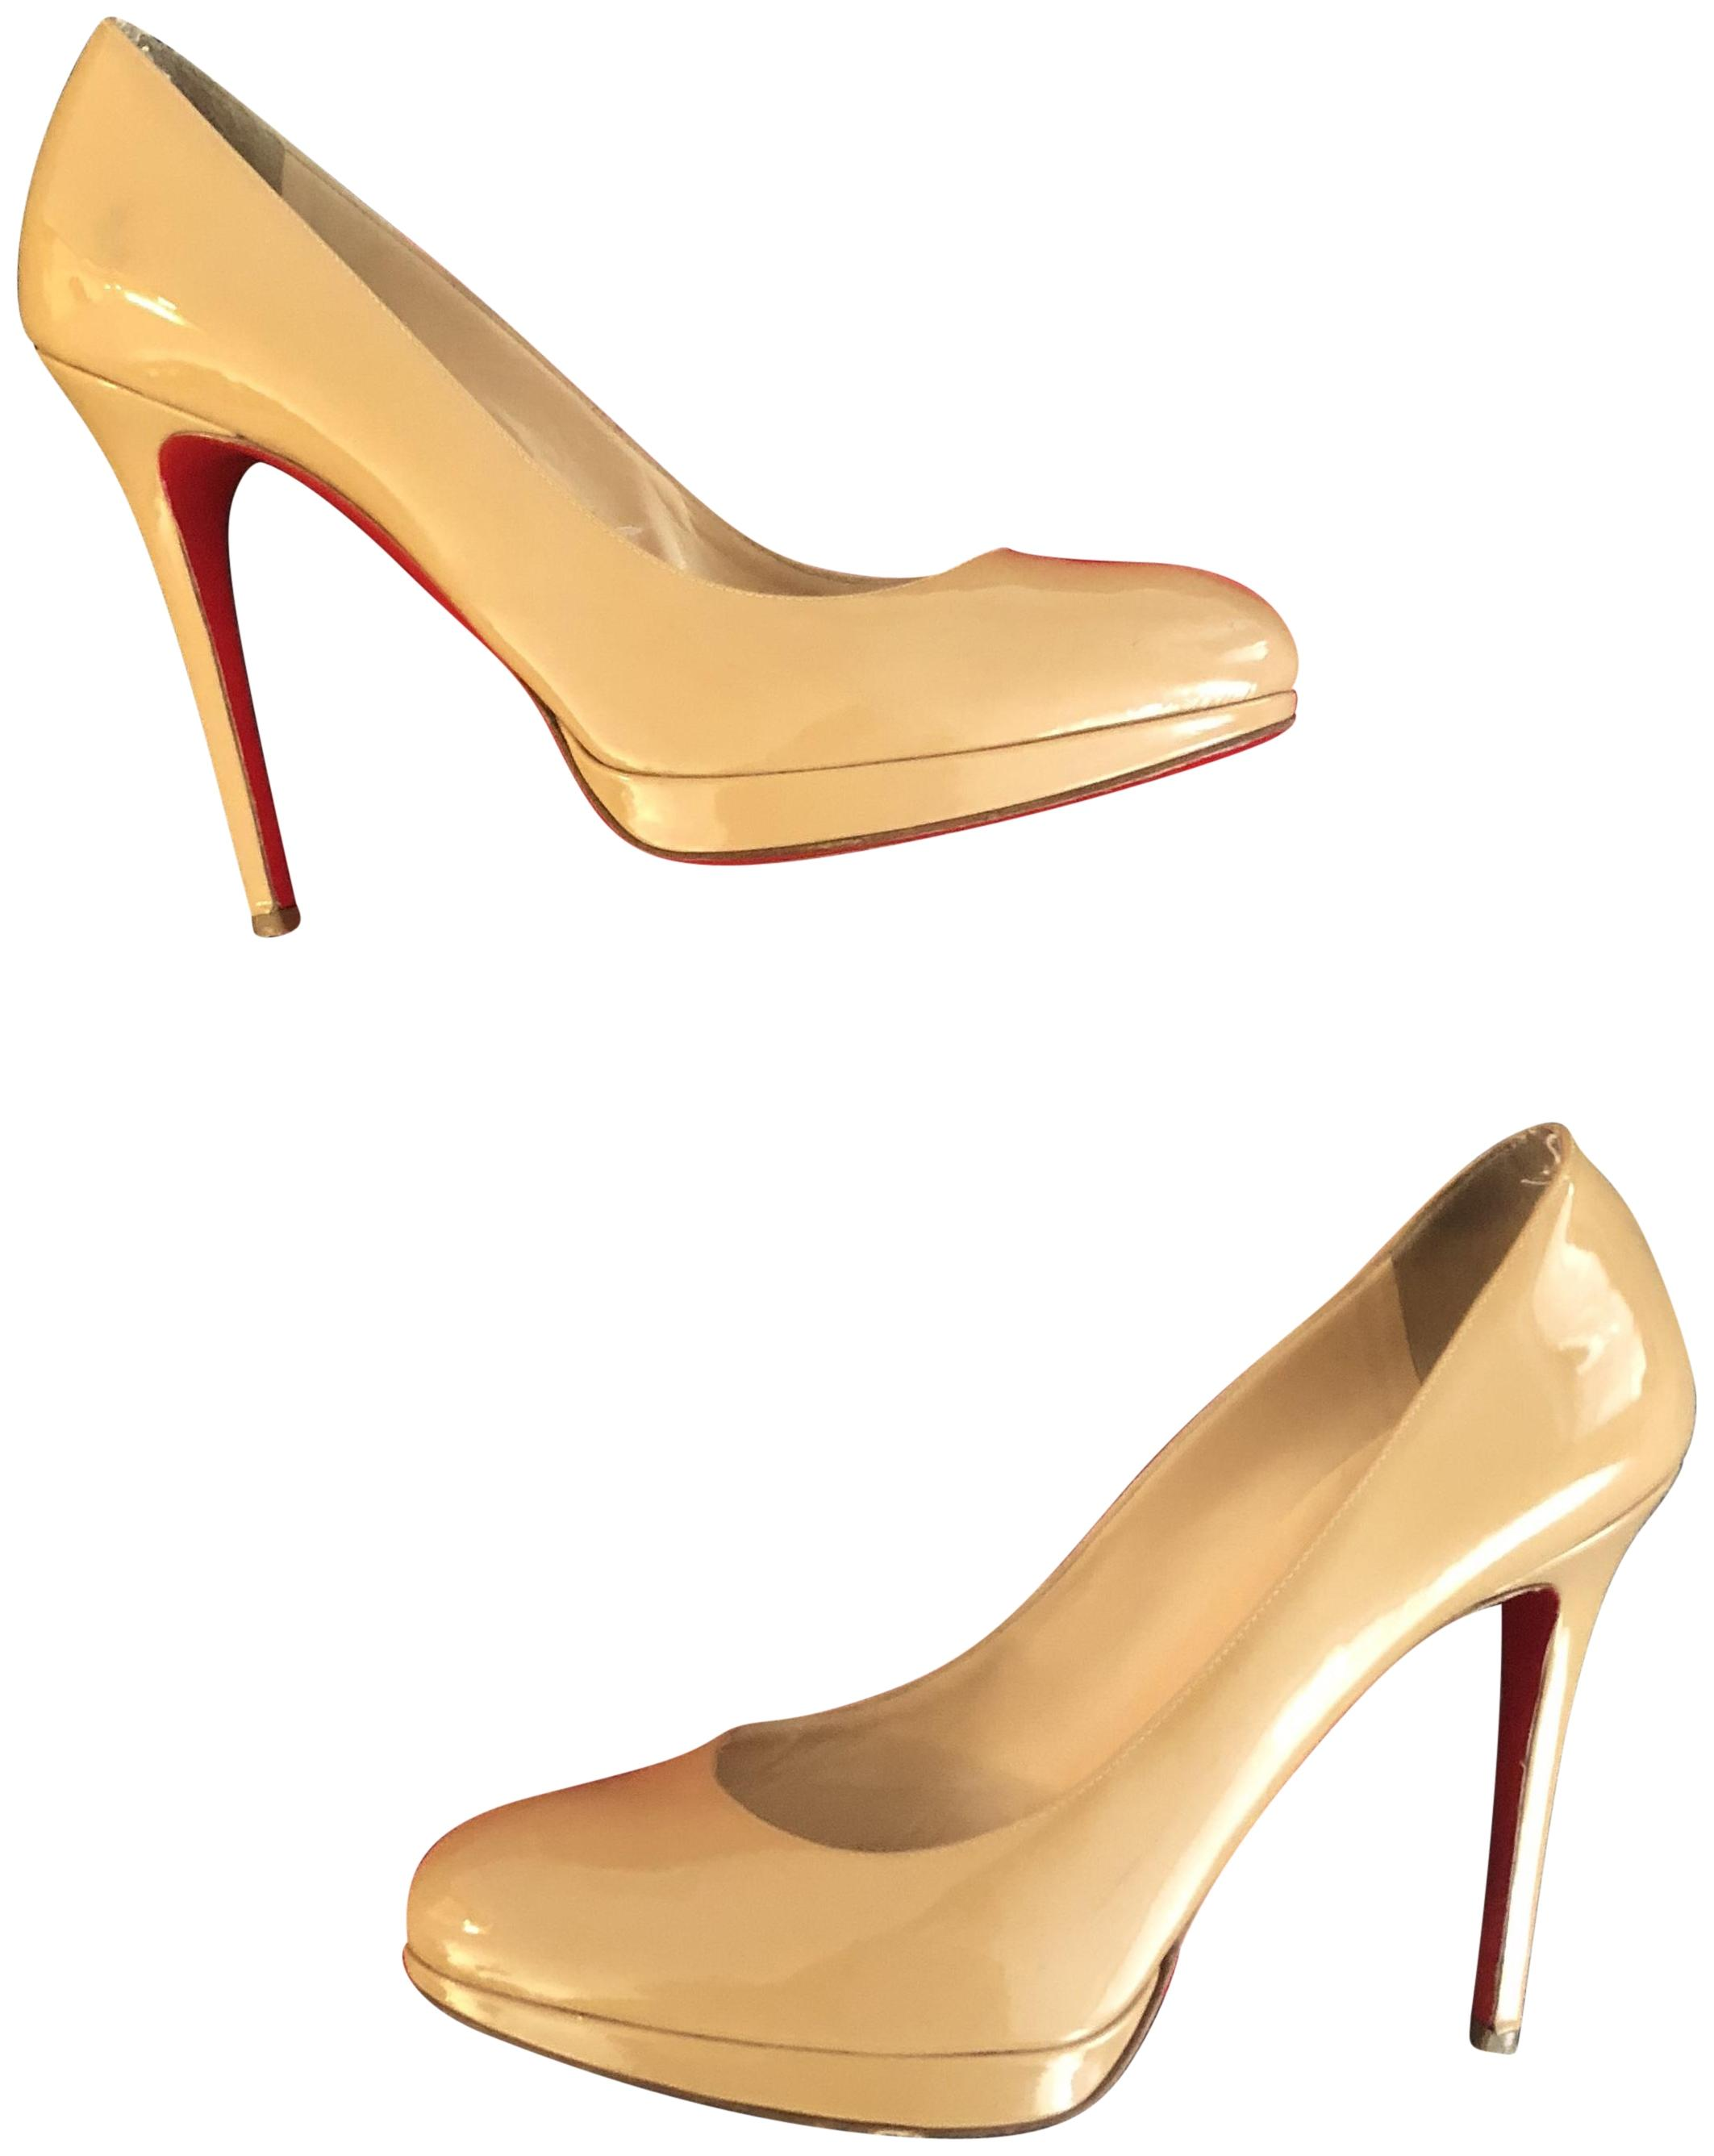 Christian Louboutin Pumps Nude Nude/Beige Patent Leather Pumps Louboutin Size EU 41 (Approx. US 11) Regular (M, B) fa182b